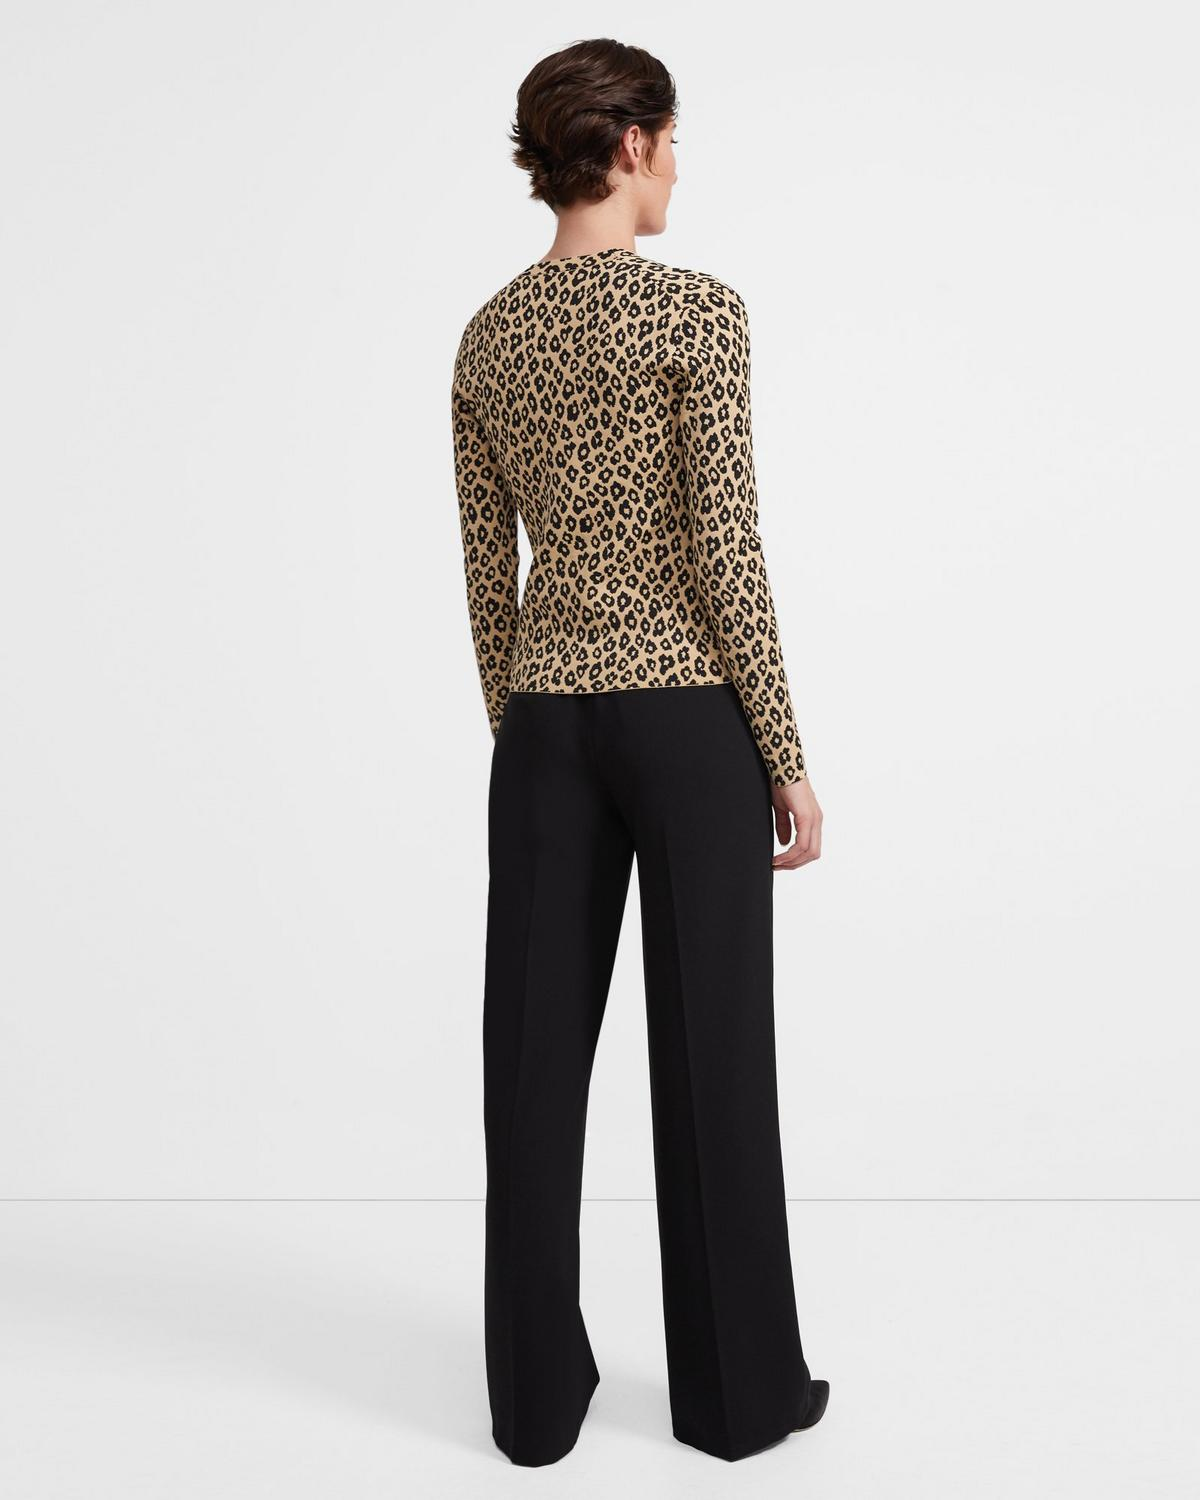 Cardigan in Leopard Knit